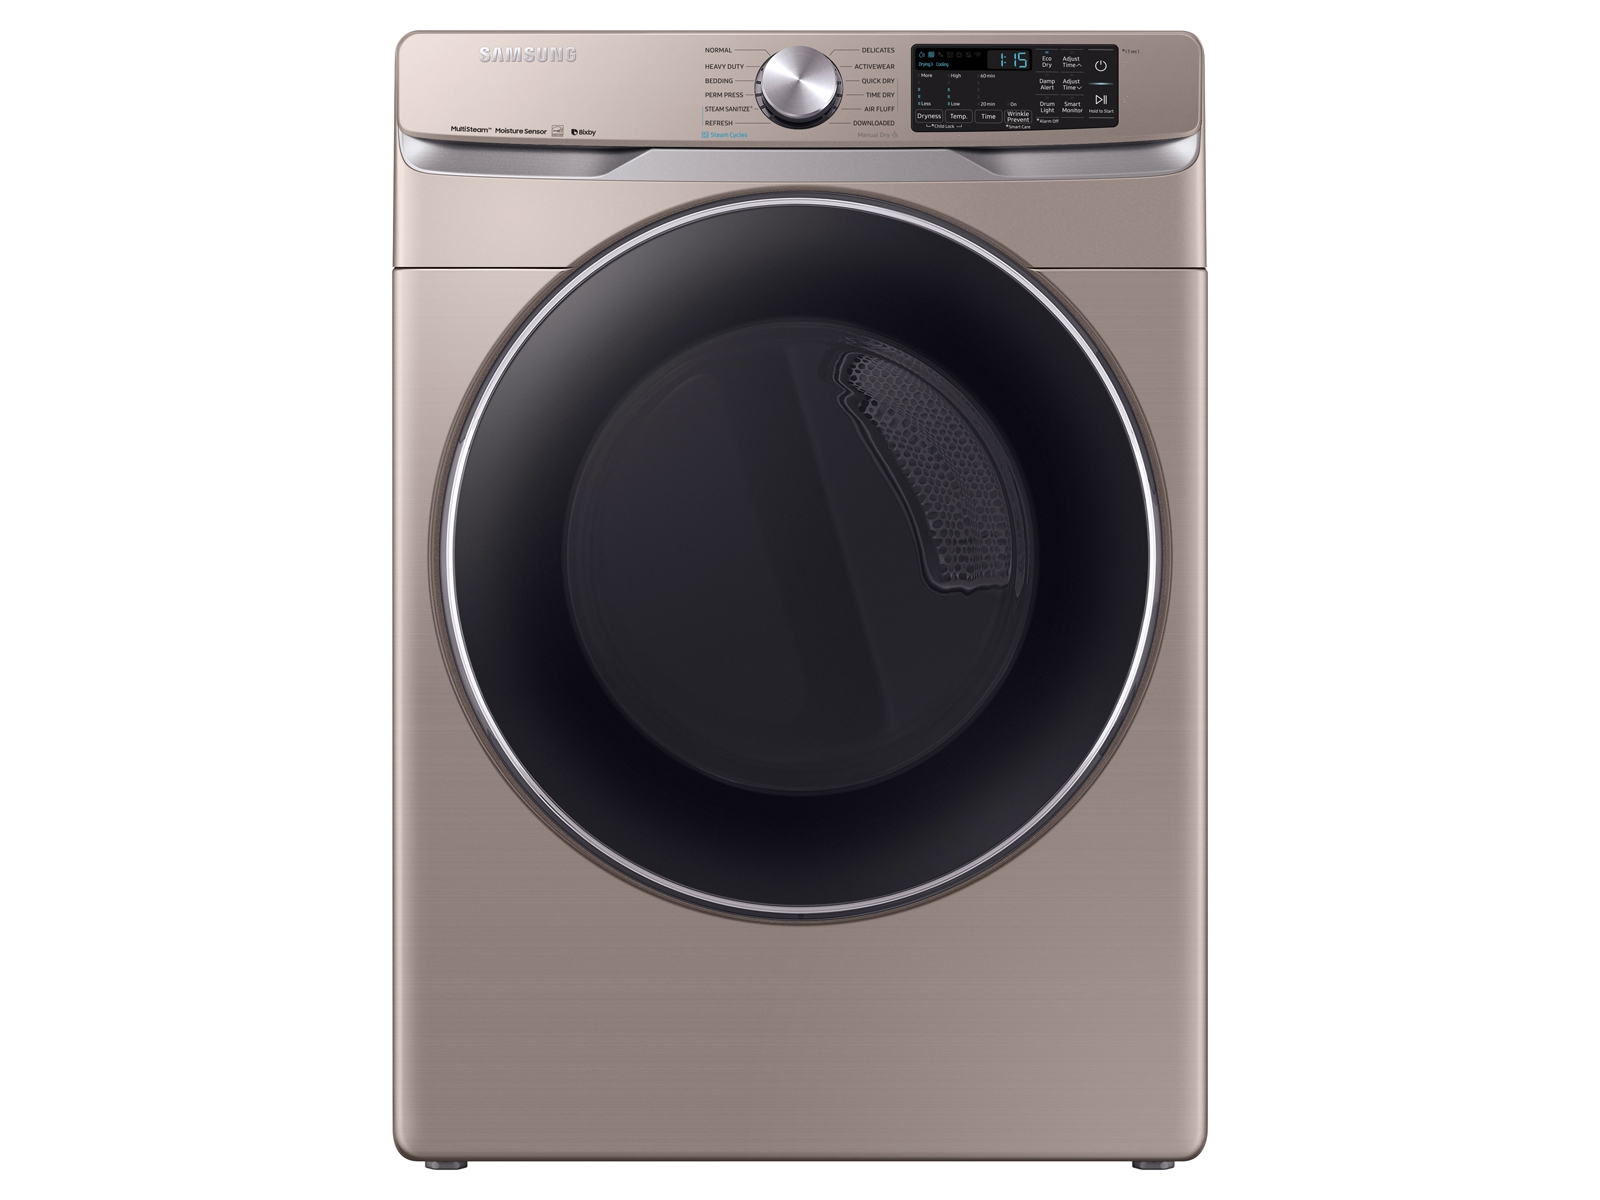 Samsung 7.5 cu. ft. Smart Gas Dryer with Steam Sanitize+ in Champagne